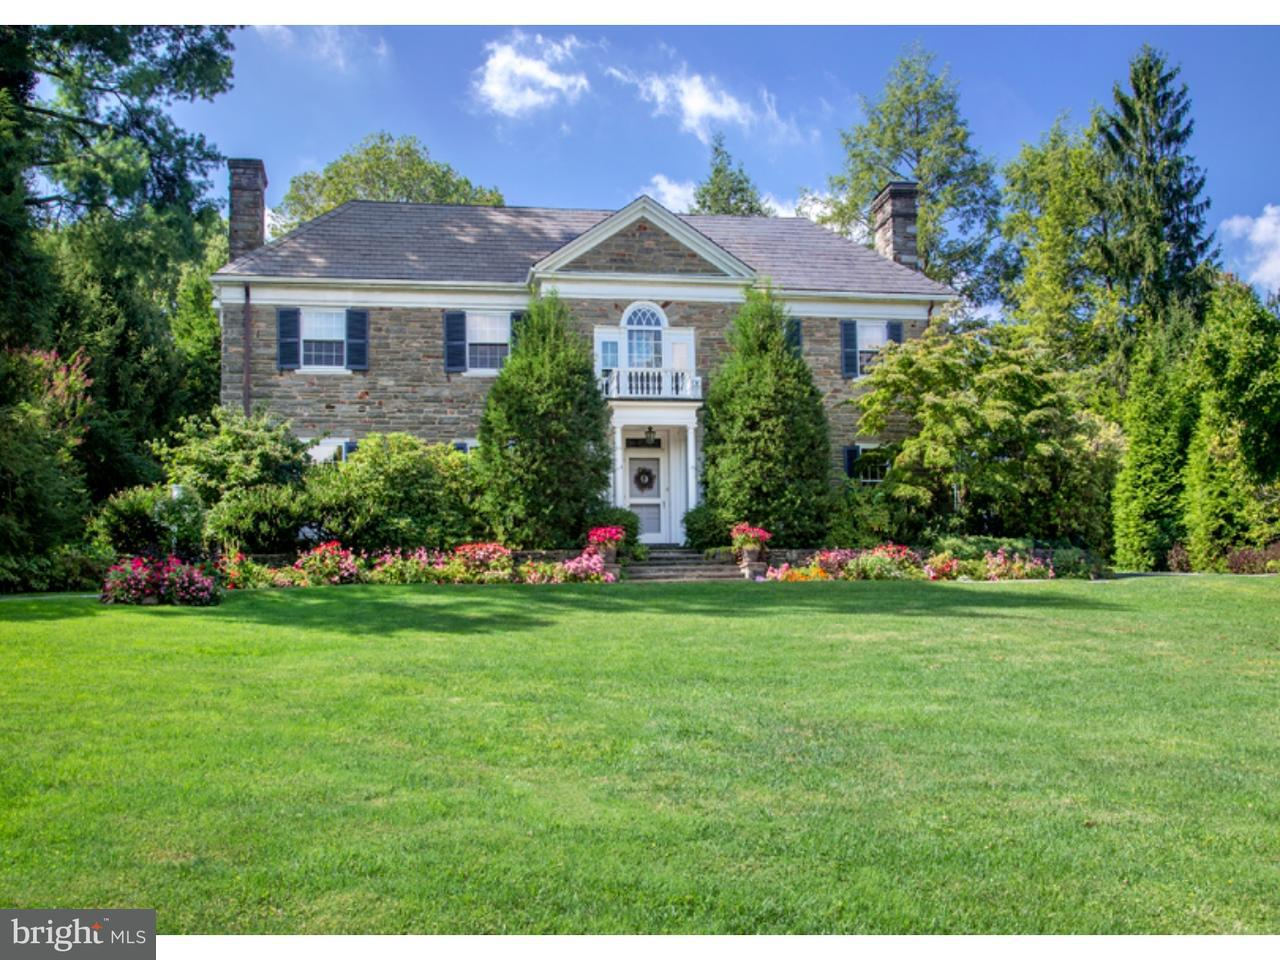 Single Family Home for Sale at 234 CHESWOLD HILL Road Haverford, Pennsylvania 19041 United States